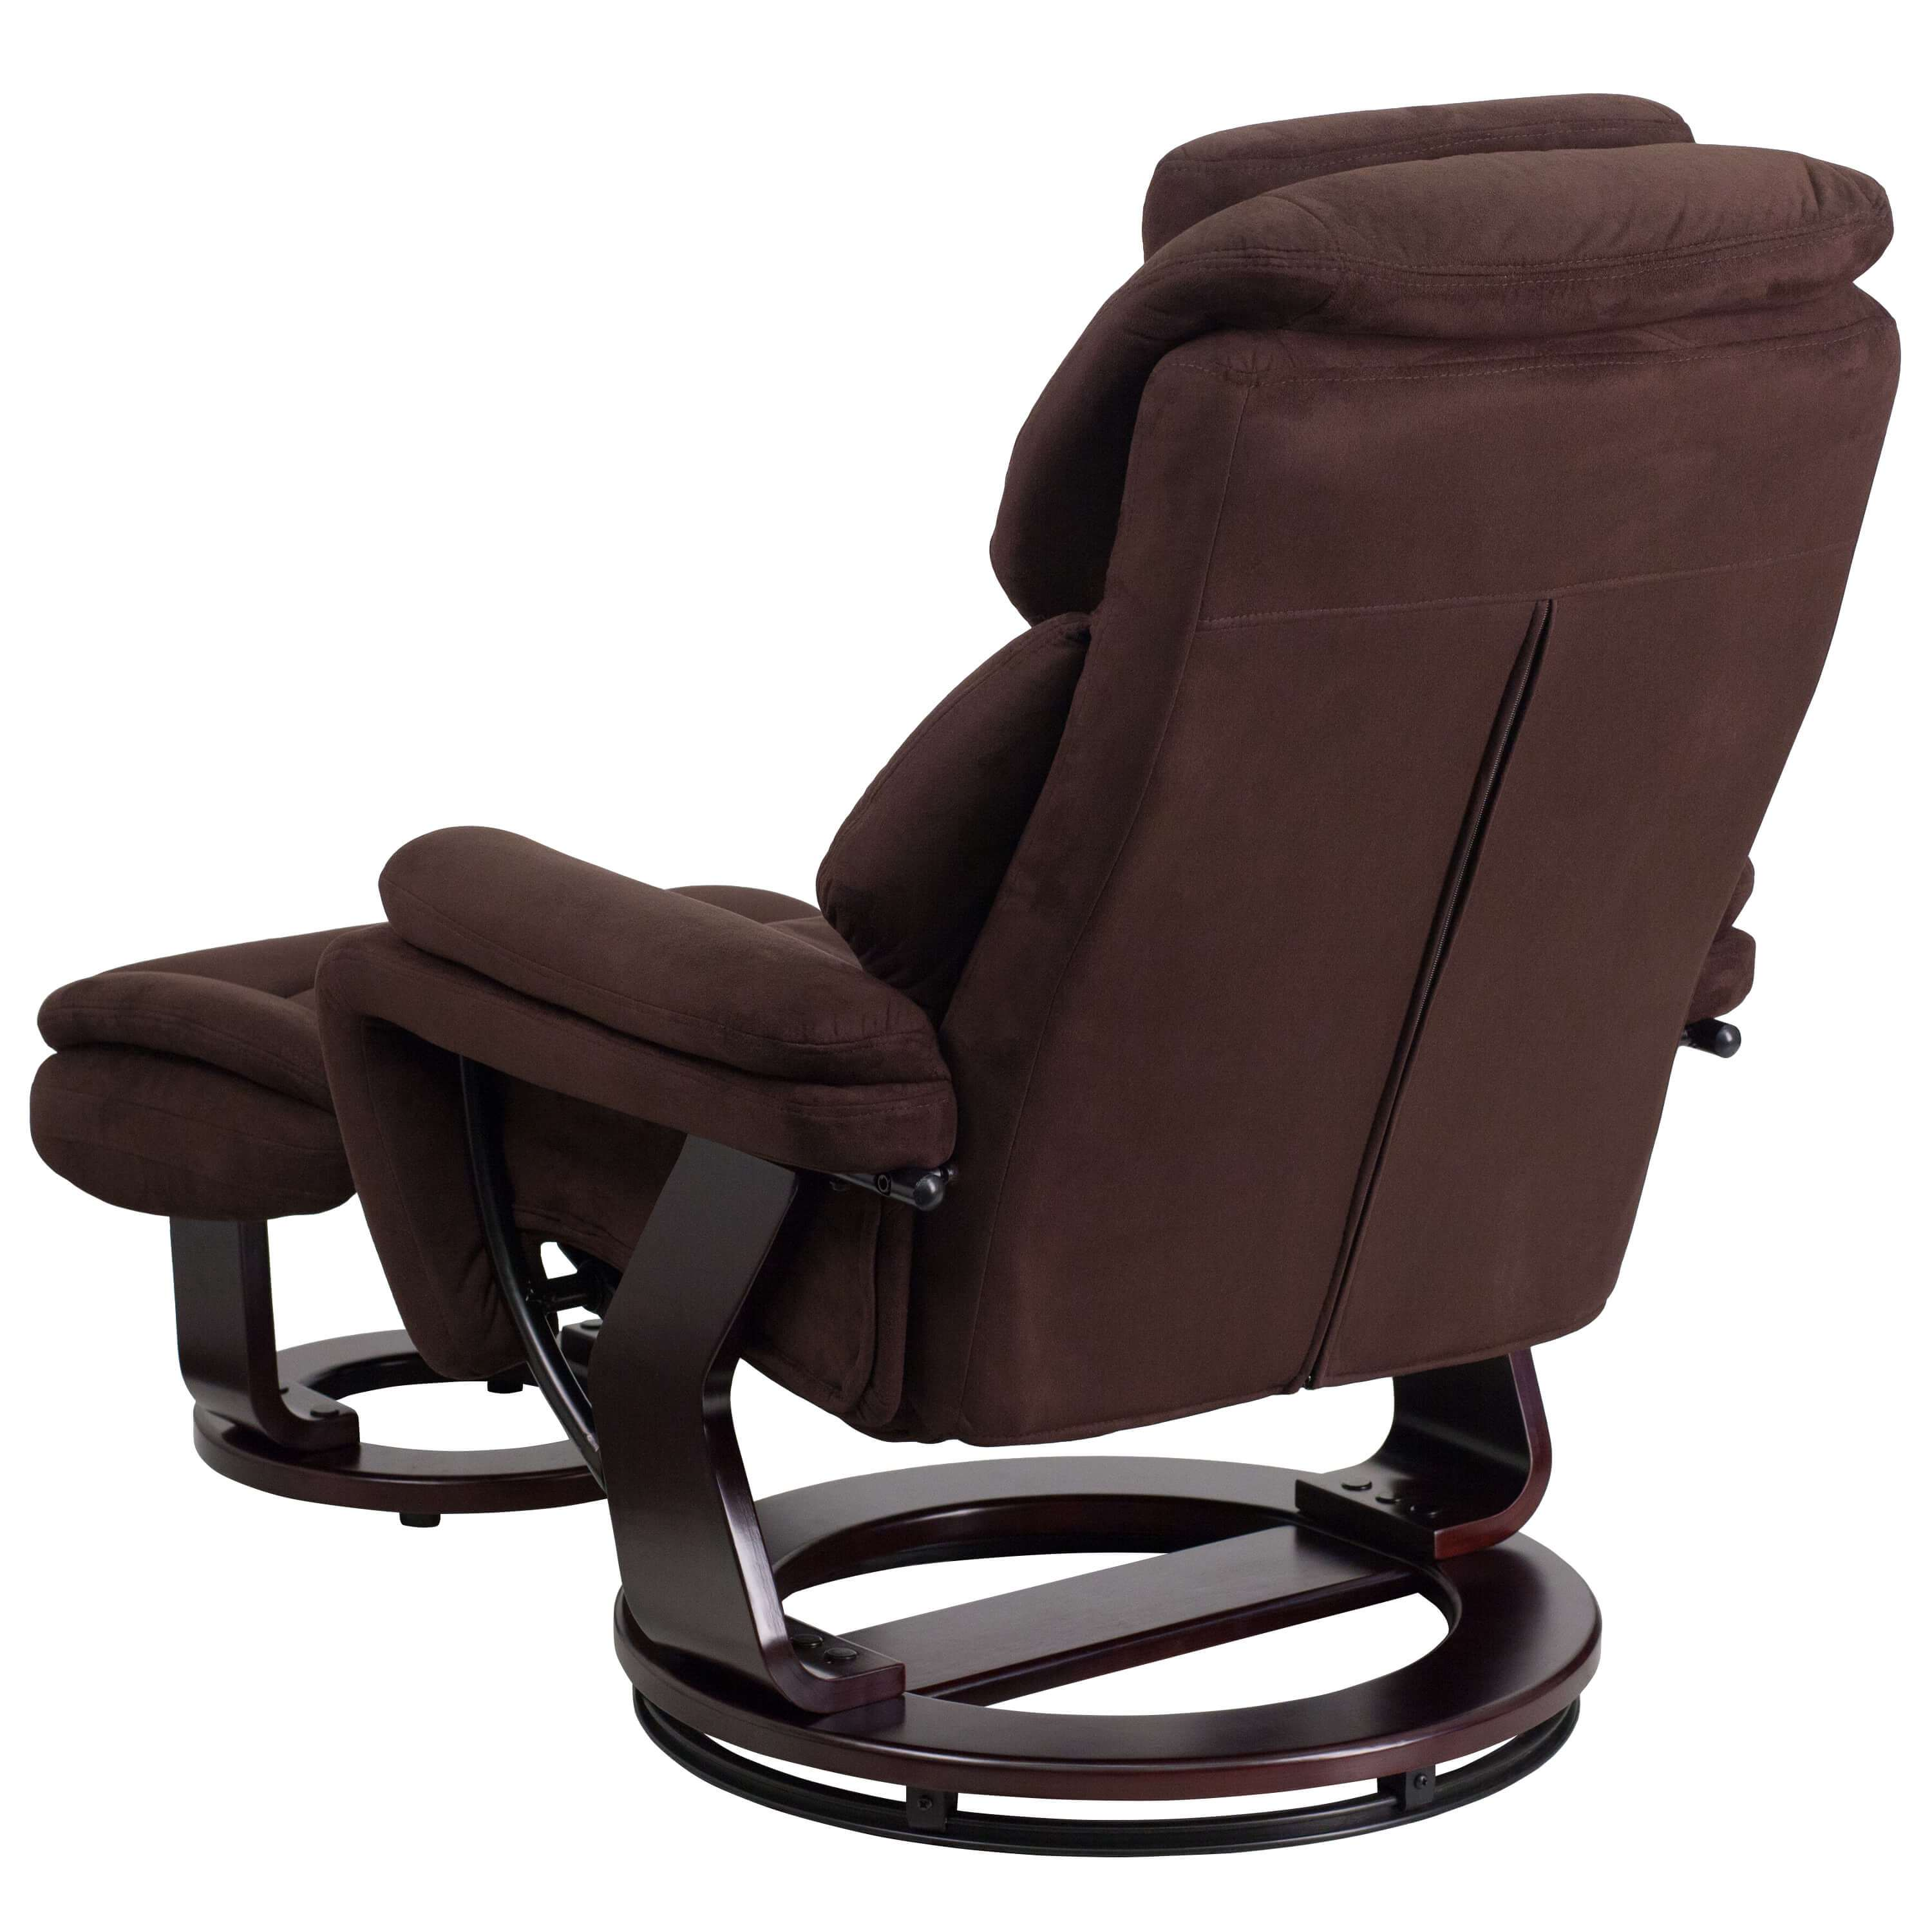 Brown recliner back view